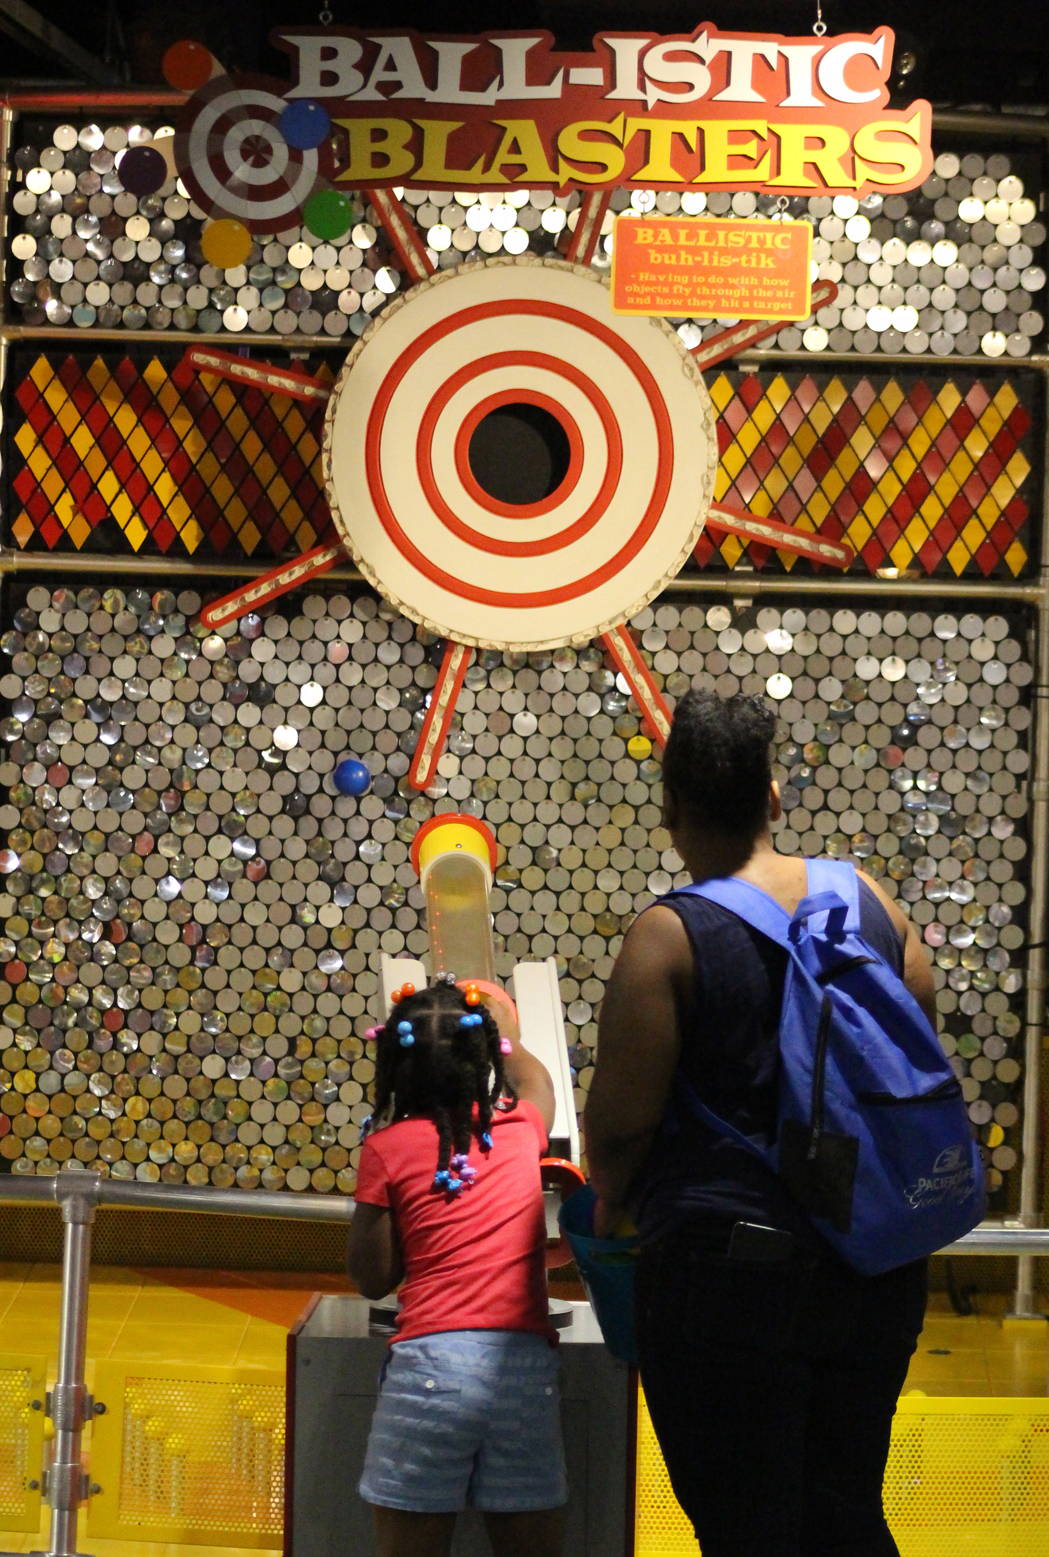 A child shoots a ball on the Ball-istic Blasters game at the Omaha Children's Museum during the 10th annual Summer Family Reunification Picnic on June 7, 2019. (Photo by Scott Stewart)